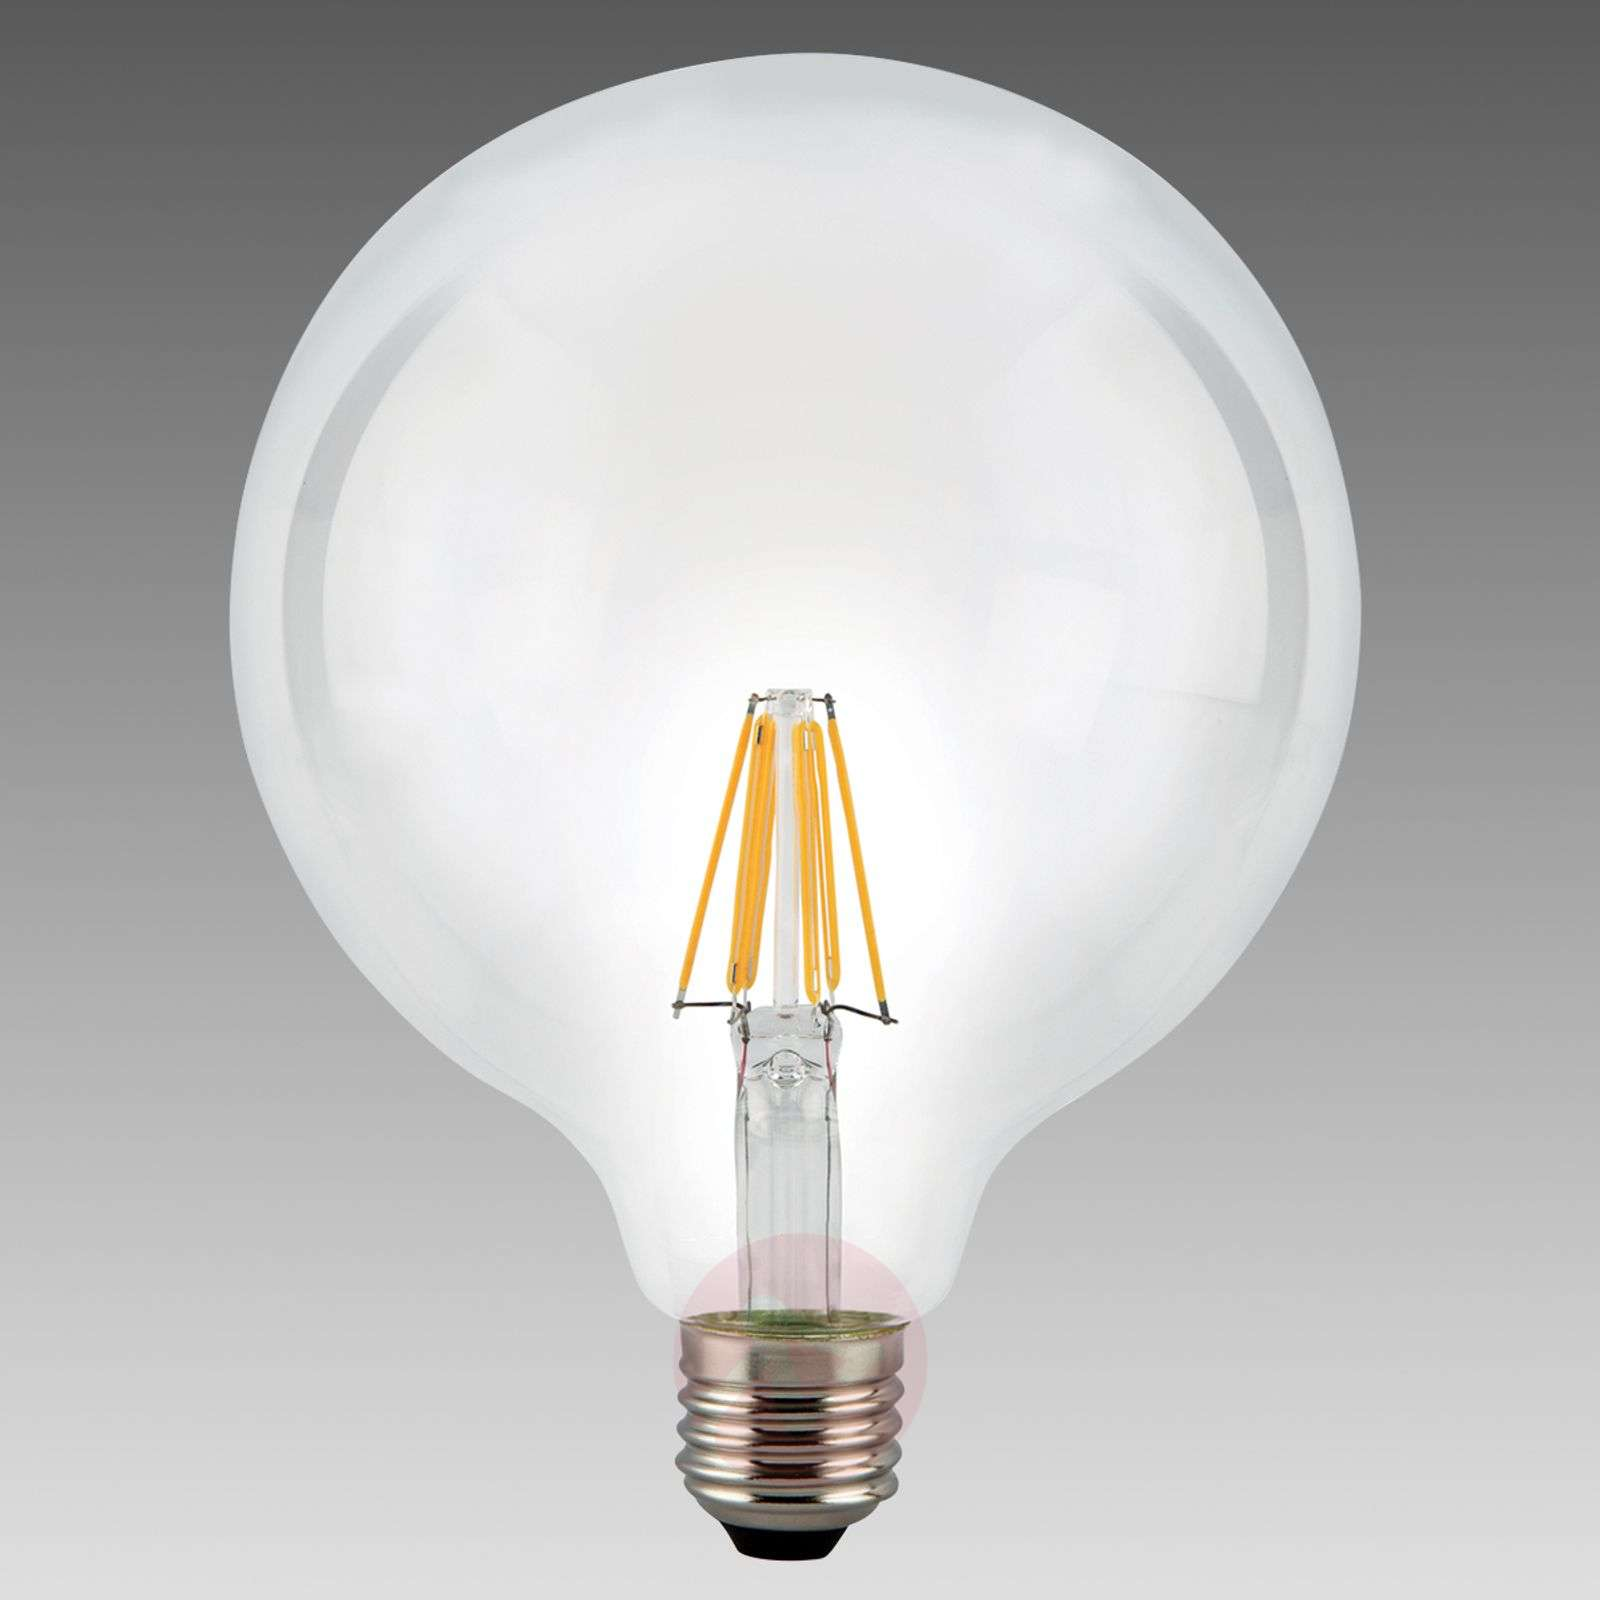 Ampoule globe LED E27 7,5 W 827, transparent-8530238-01